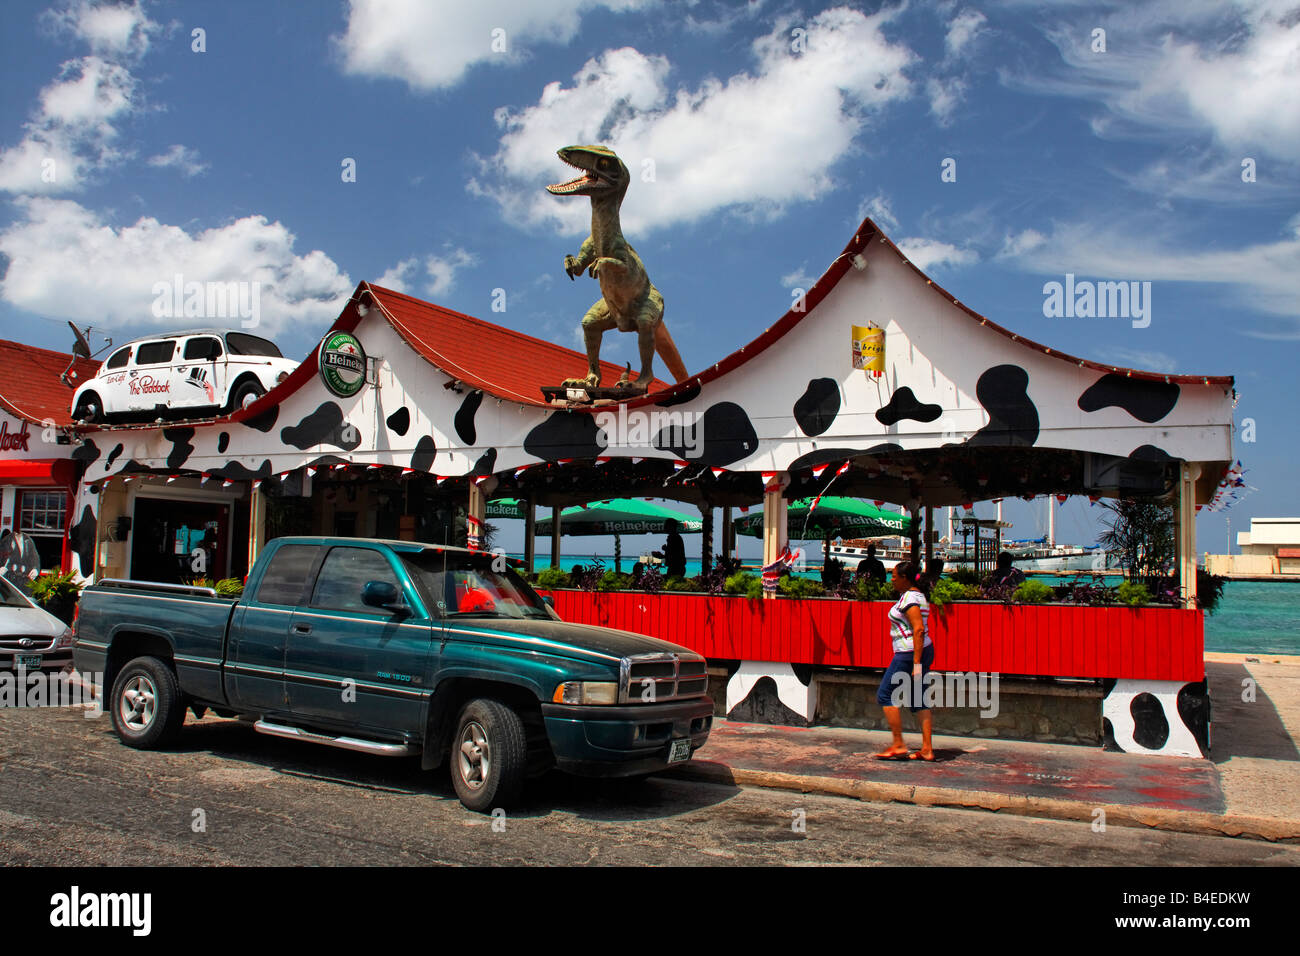 West Indies Aruba Oranjestadt Bar Cafe The Paddock Dino on the roof - Stock Image